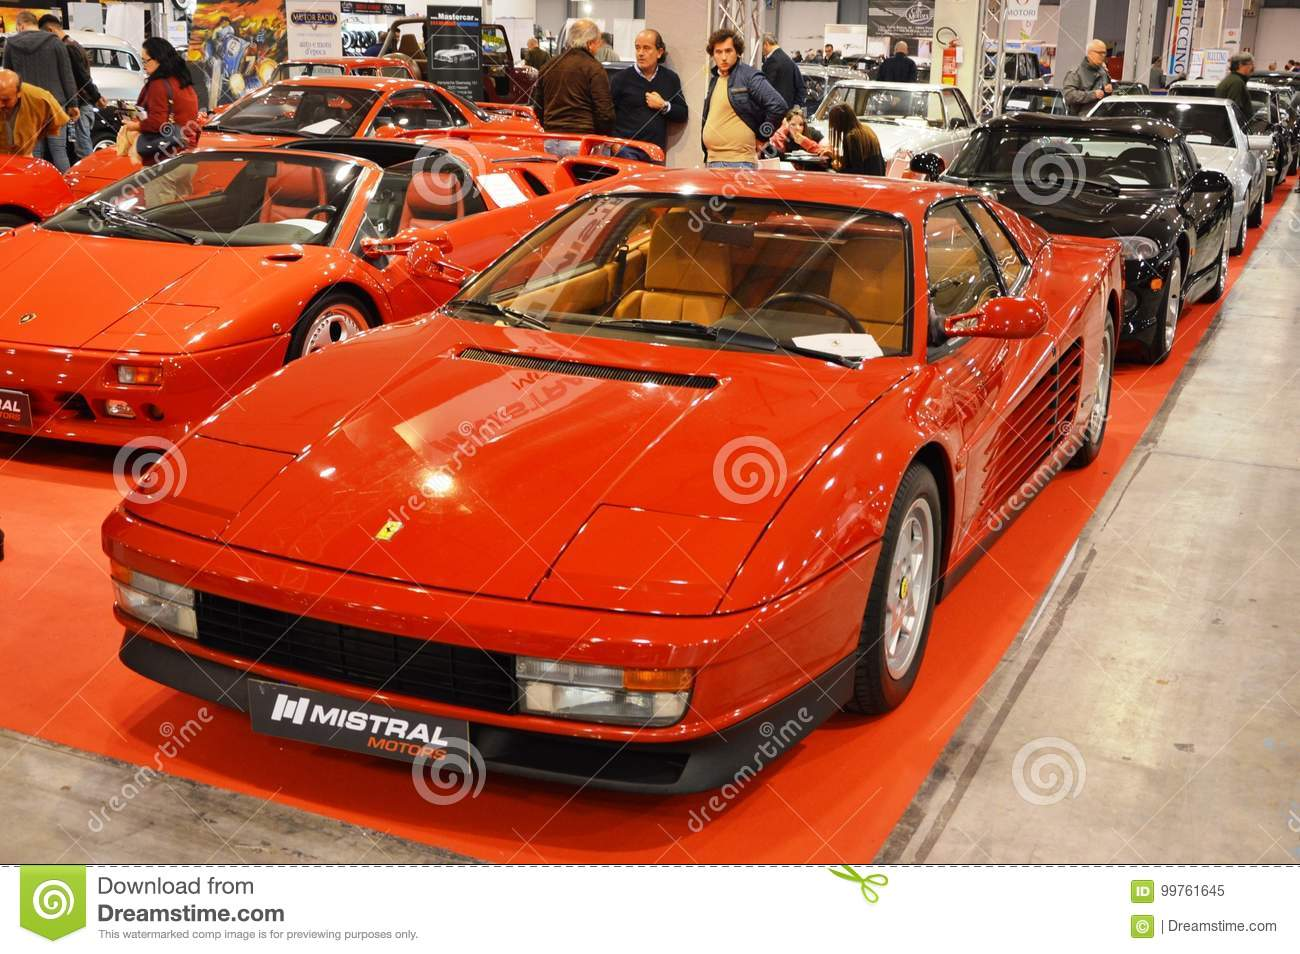 Ferrari Testarossa Color Red Year 1991 At Vintage Car Exposition In Padova 2015 Editorial Image Image Of Classic Ride 99761645